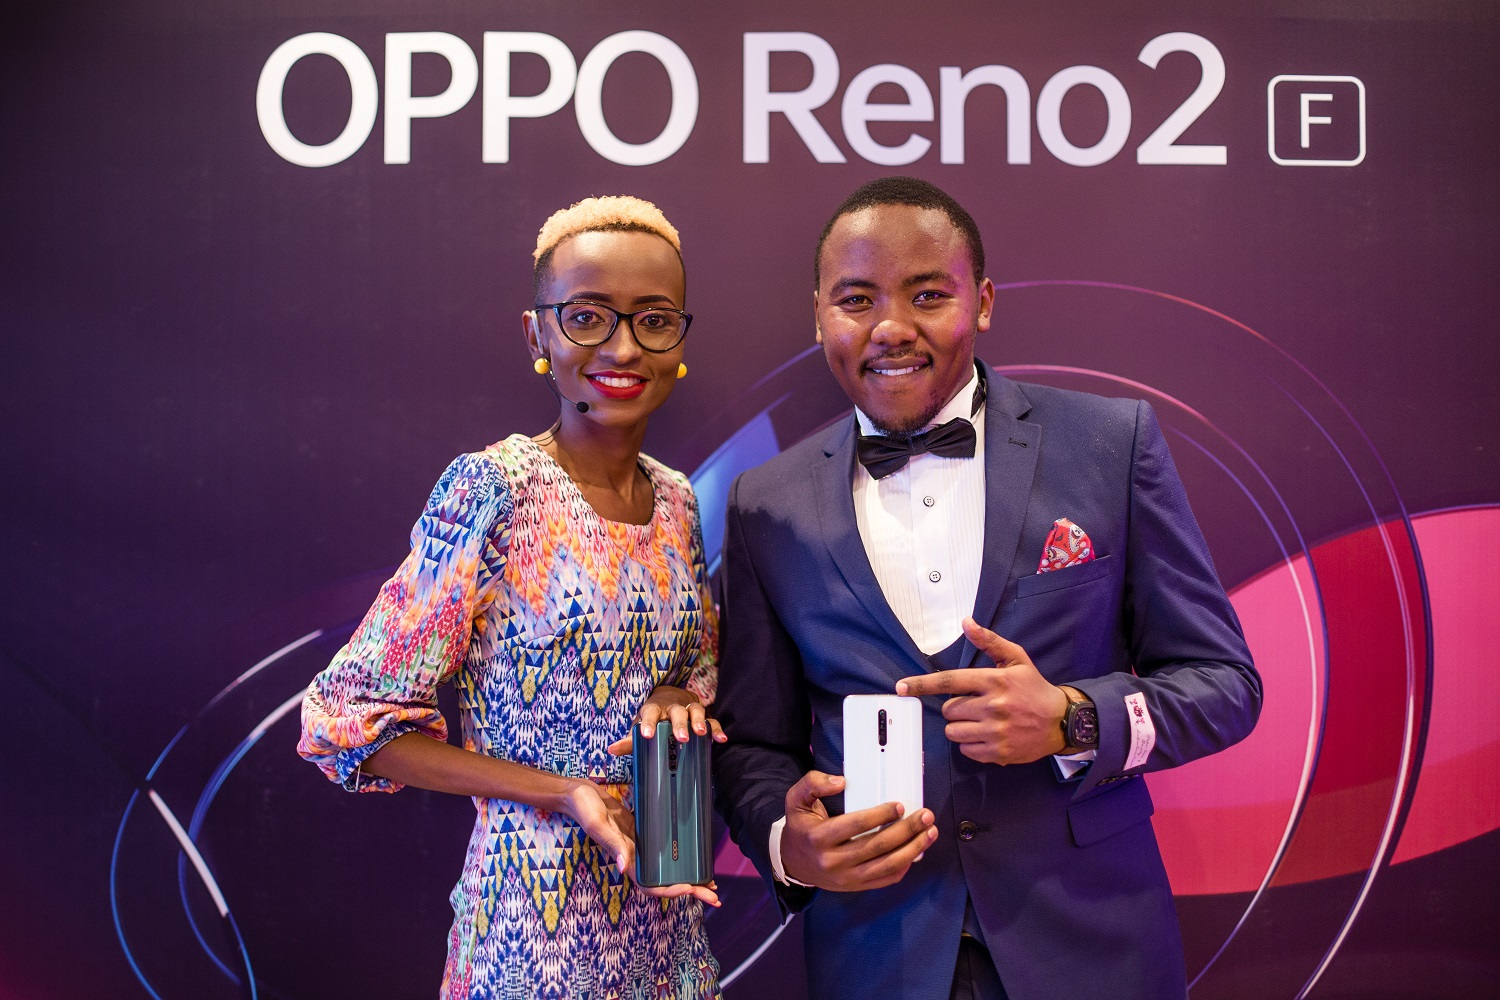 OPPO Reno2 price in Kenya www.businesstoday.co.ke